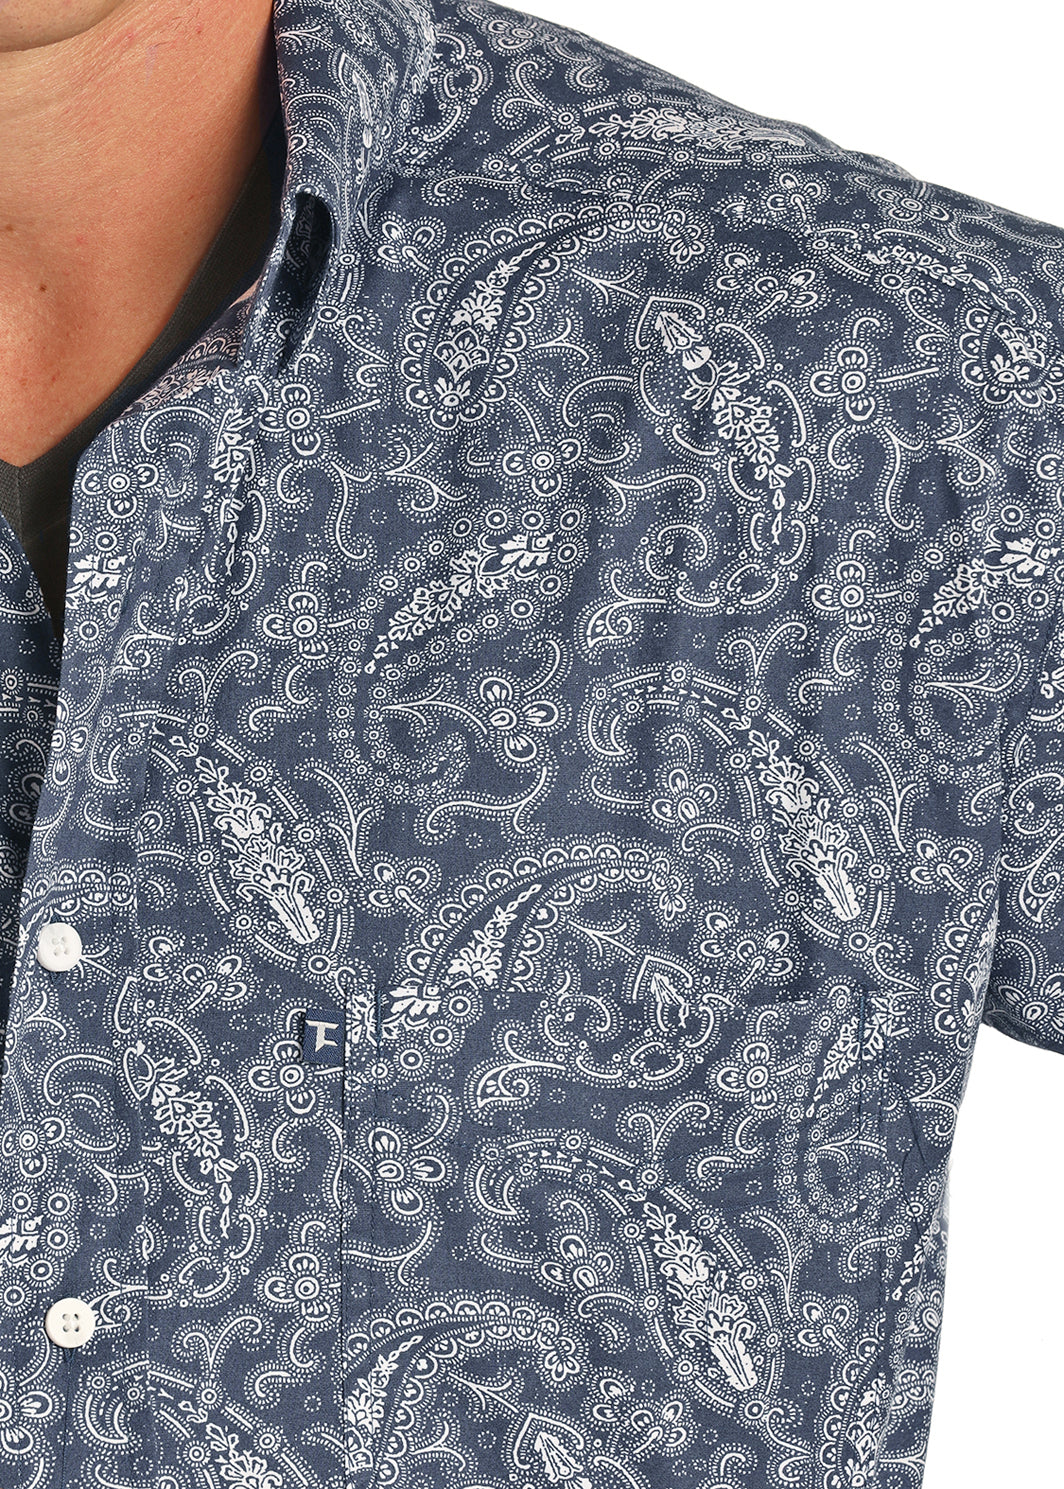 Panhandle Tuff Cooper Performance Long Sleeve Navy Paisley Stretch Shirt